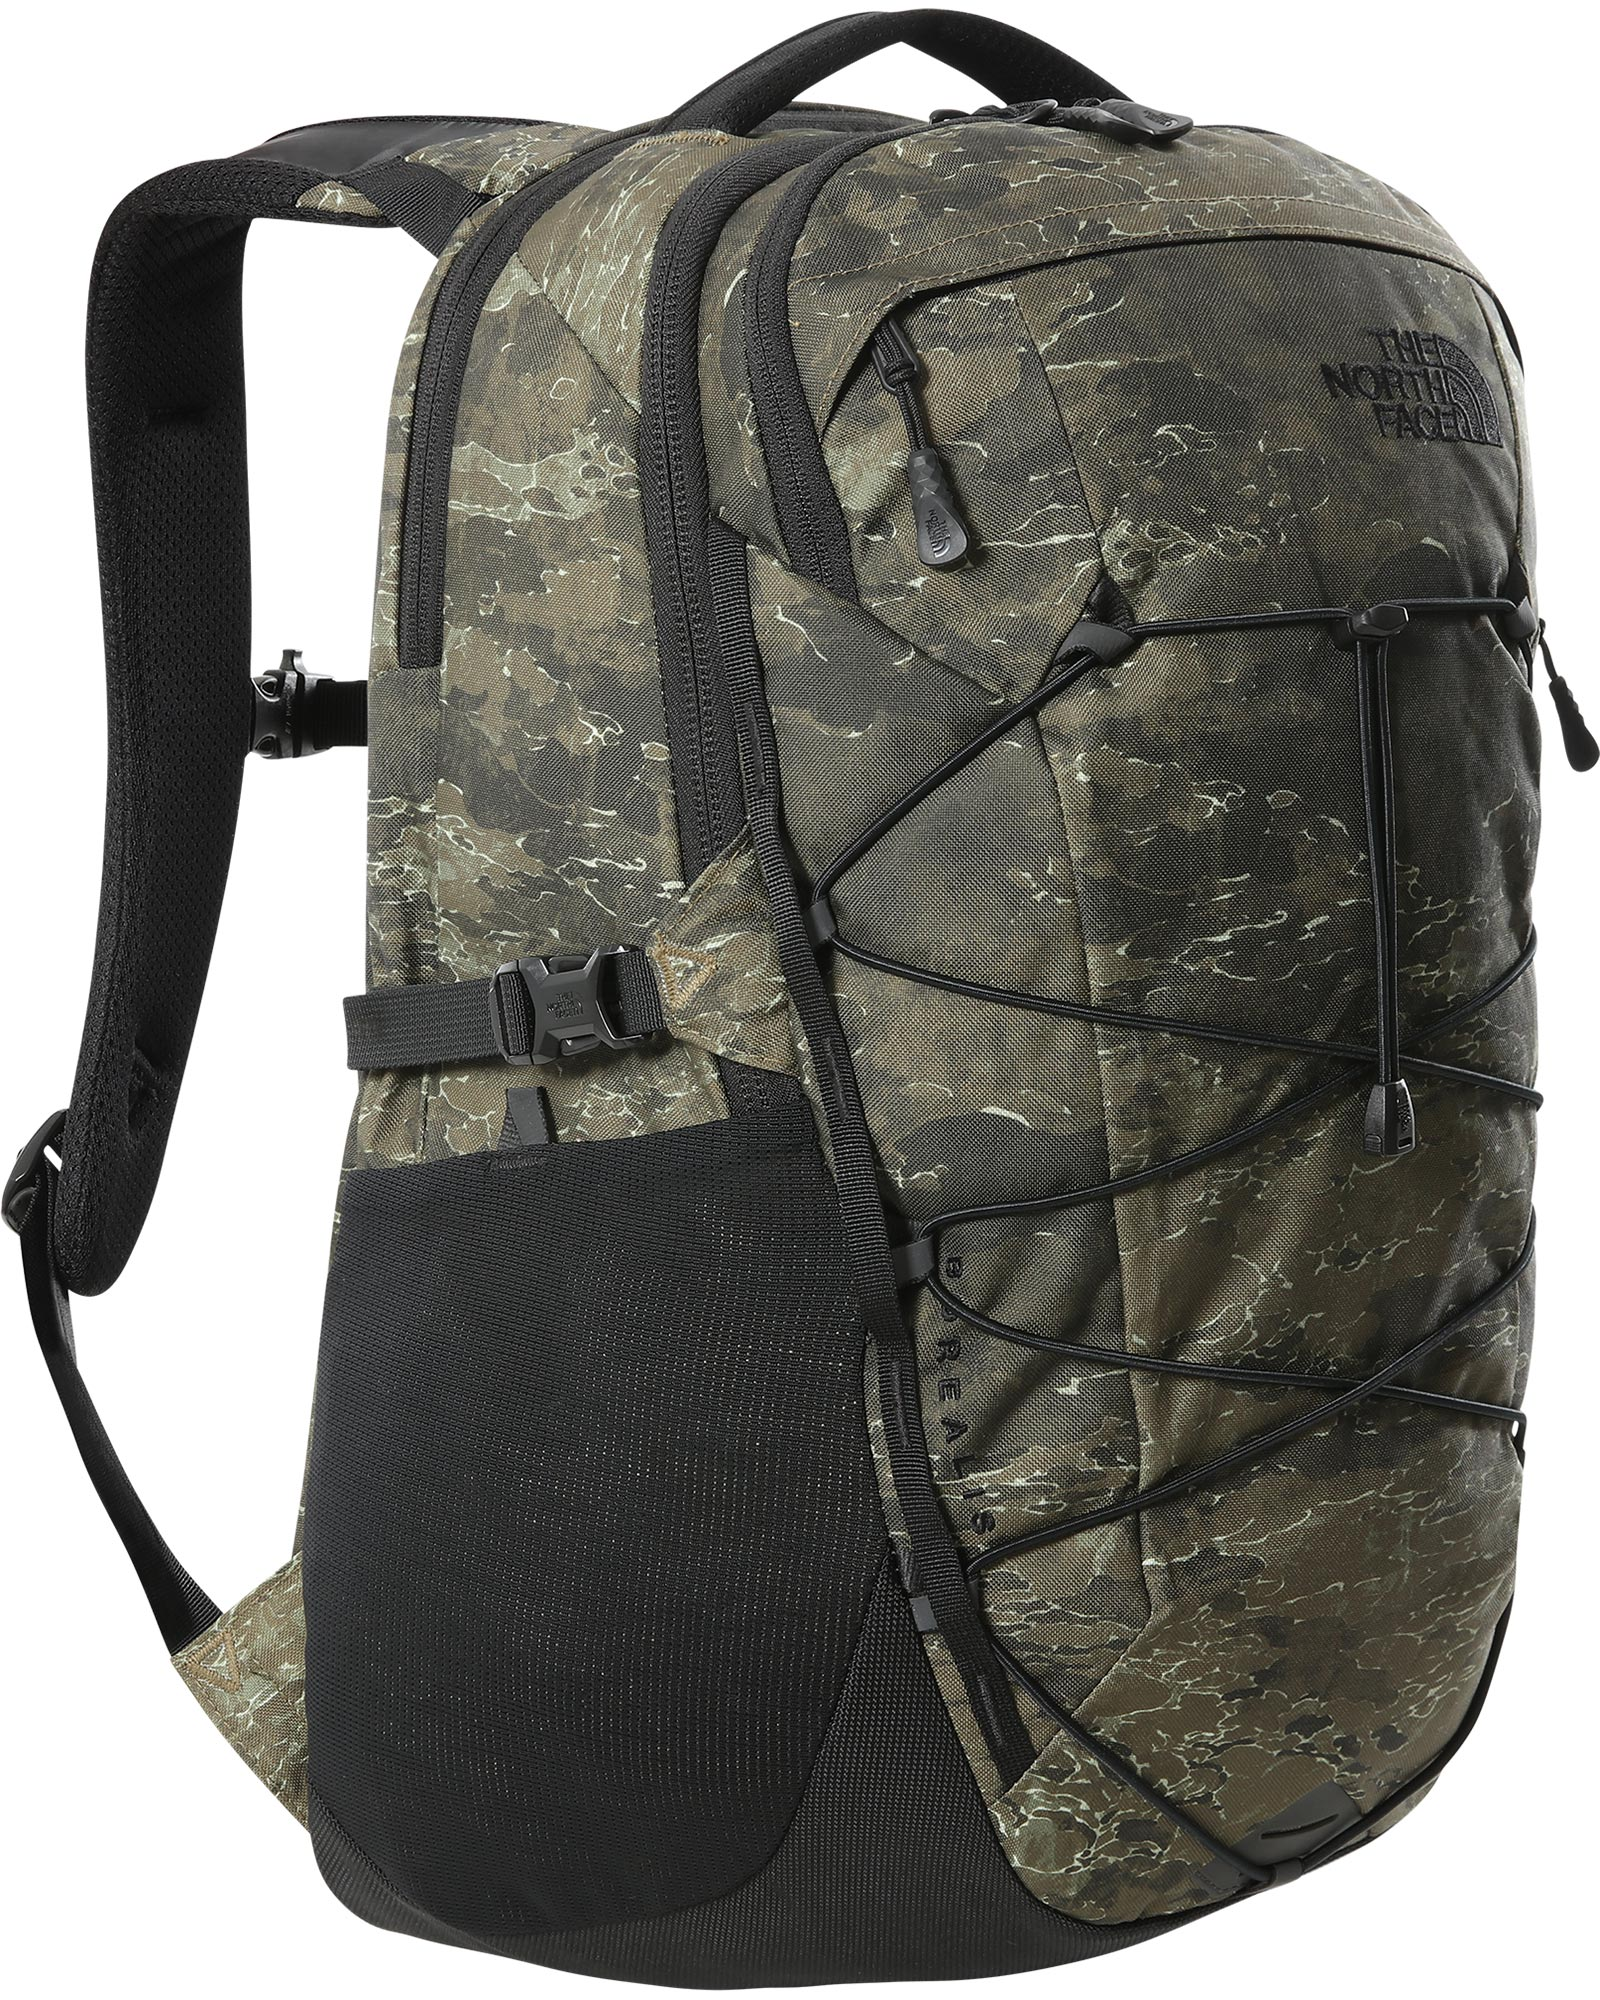 The North Face Borealis Backpack 0